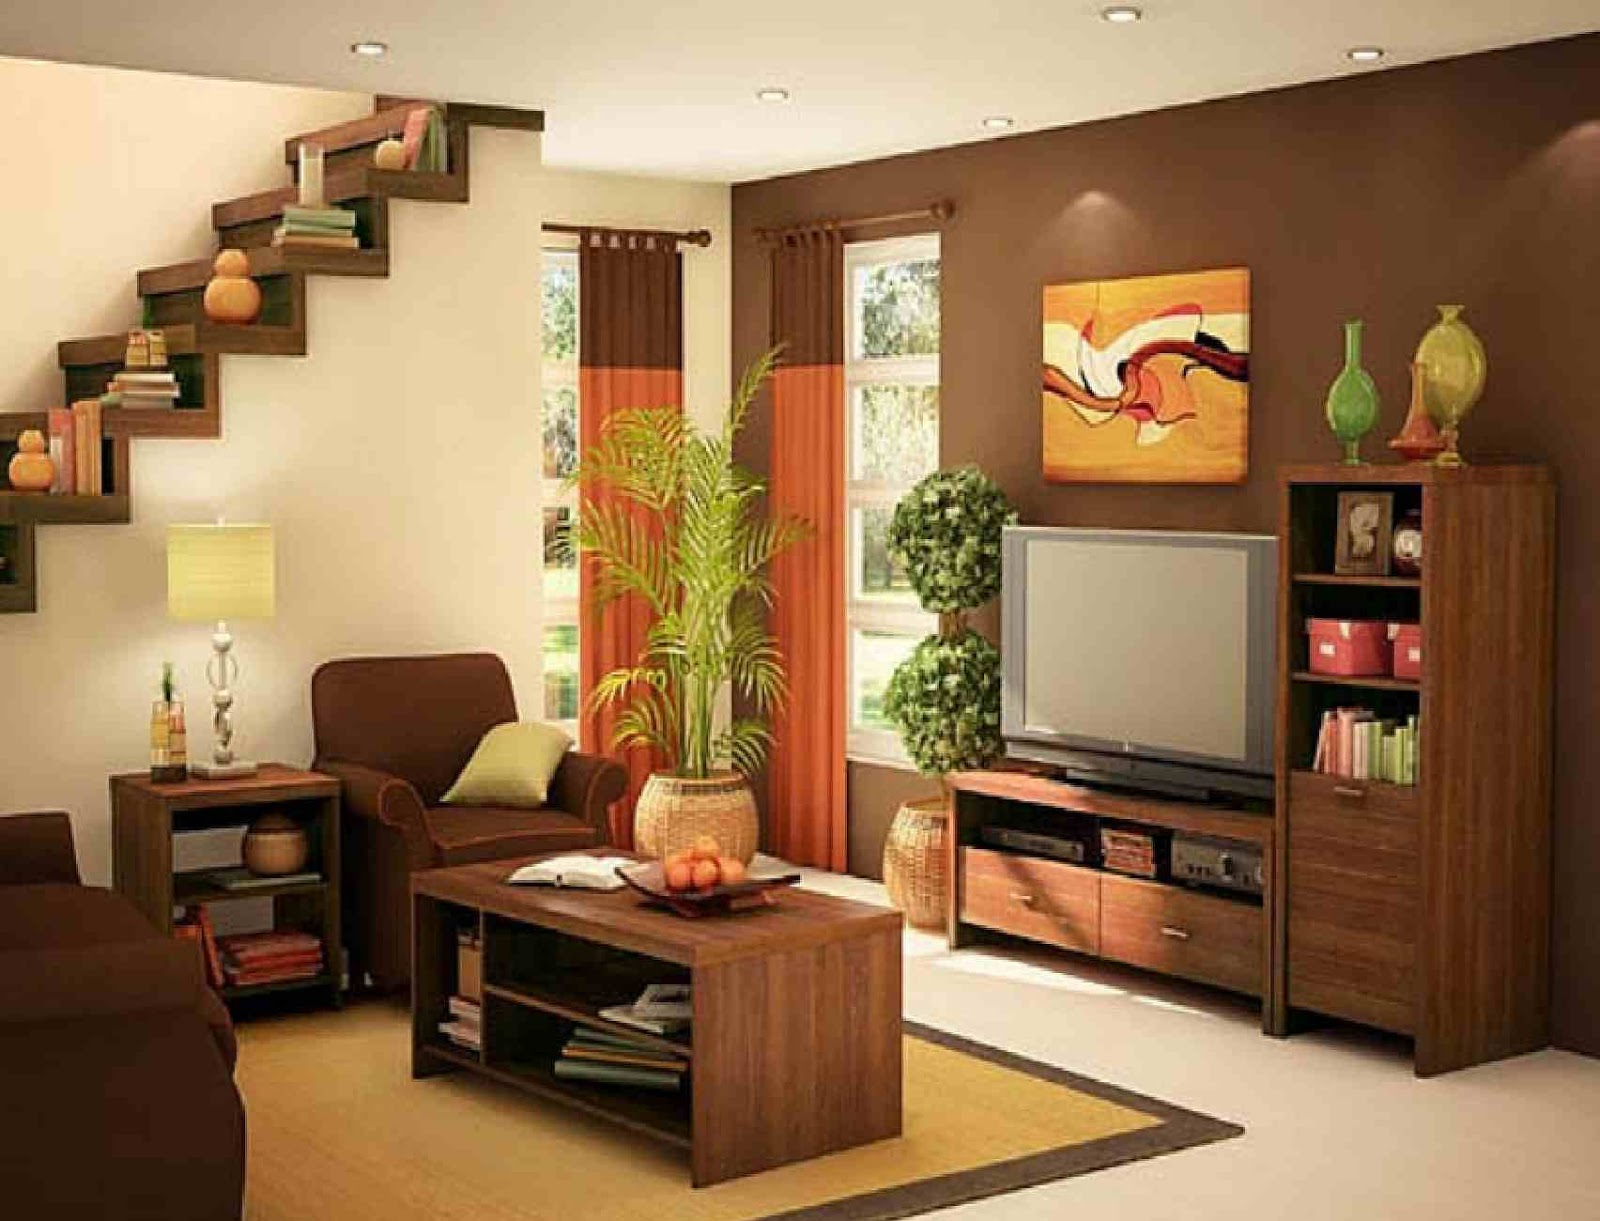 Home interior designs simple living room designs for Interior design living room